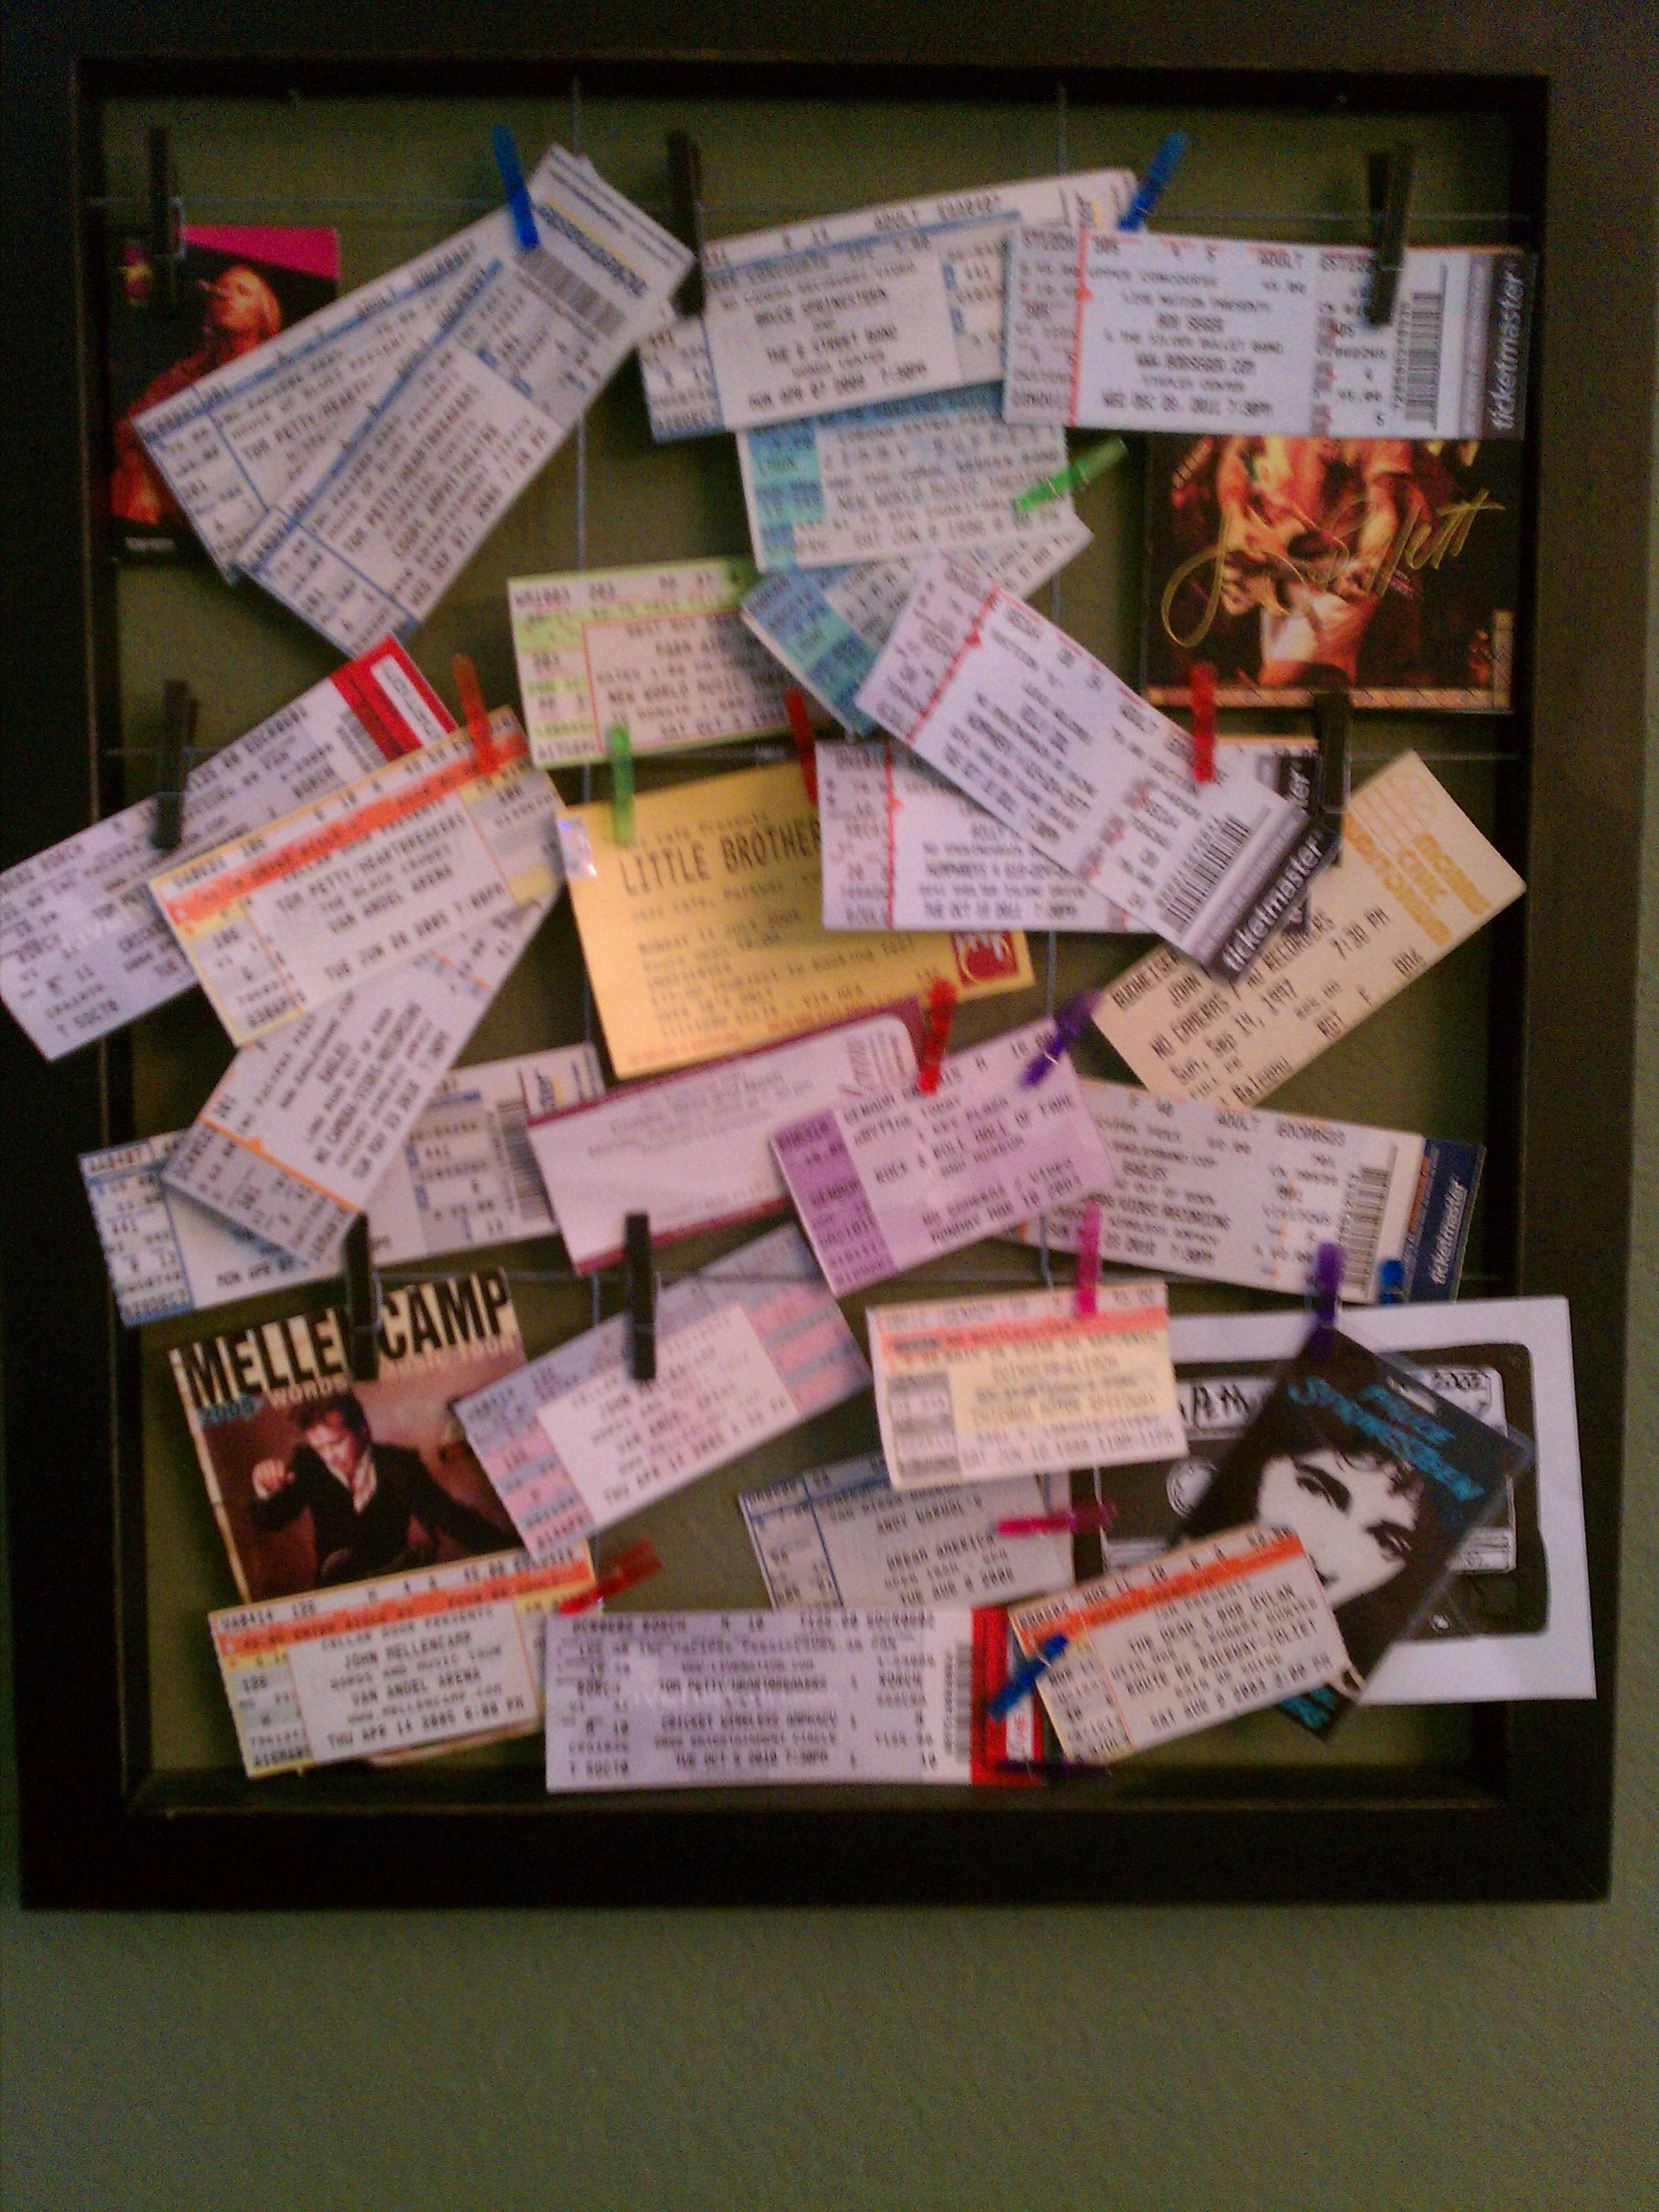 Concert Tickets Displayed! I am so doing this for my apartment ...